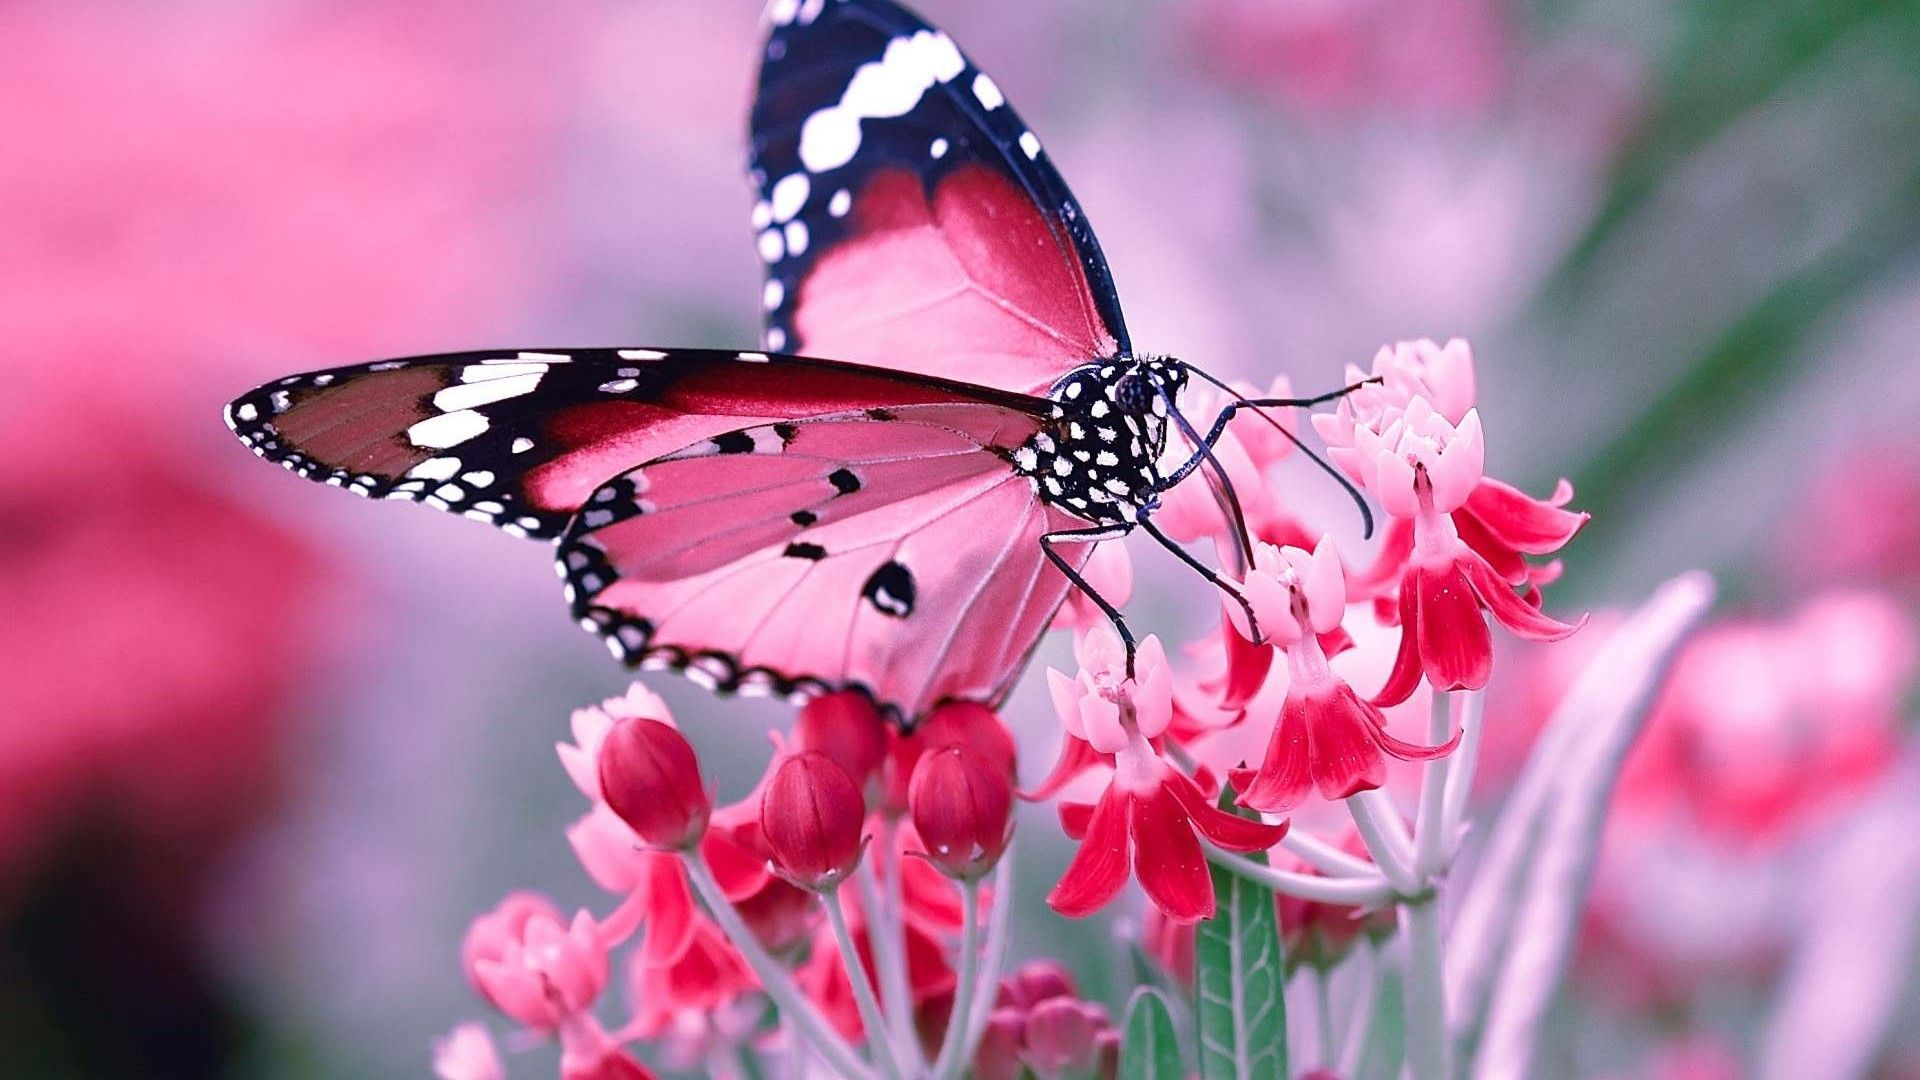 Wallpaper Pink Butterfly Desktop Is Best High Definition Wallpaper Image 2018 You Can Use This Wallp Butterfly Photos Butterfly Pictures Beautiful Butterflies